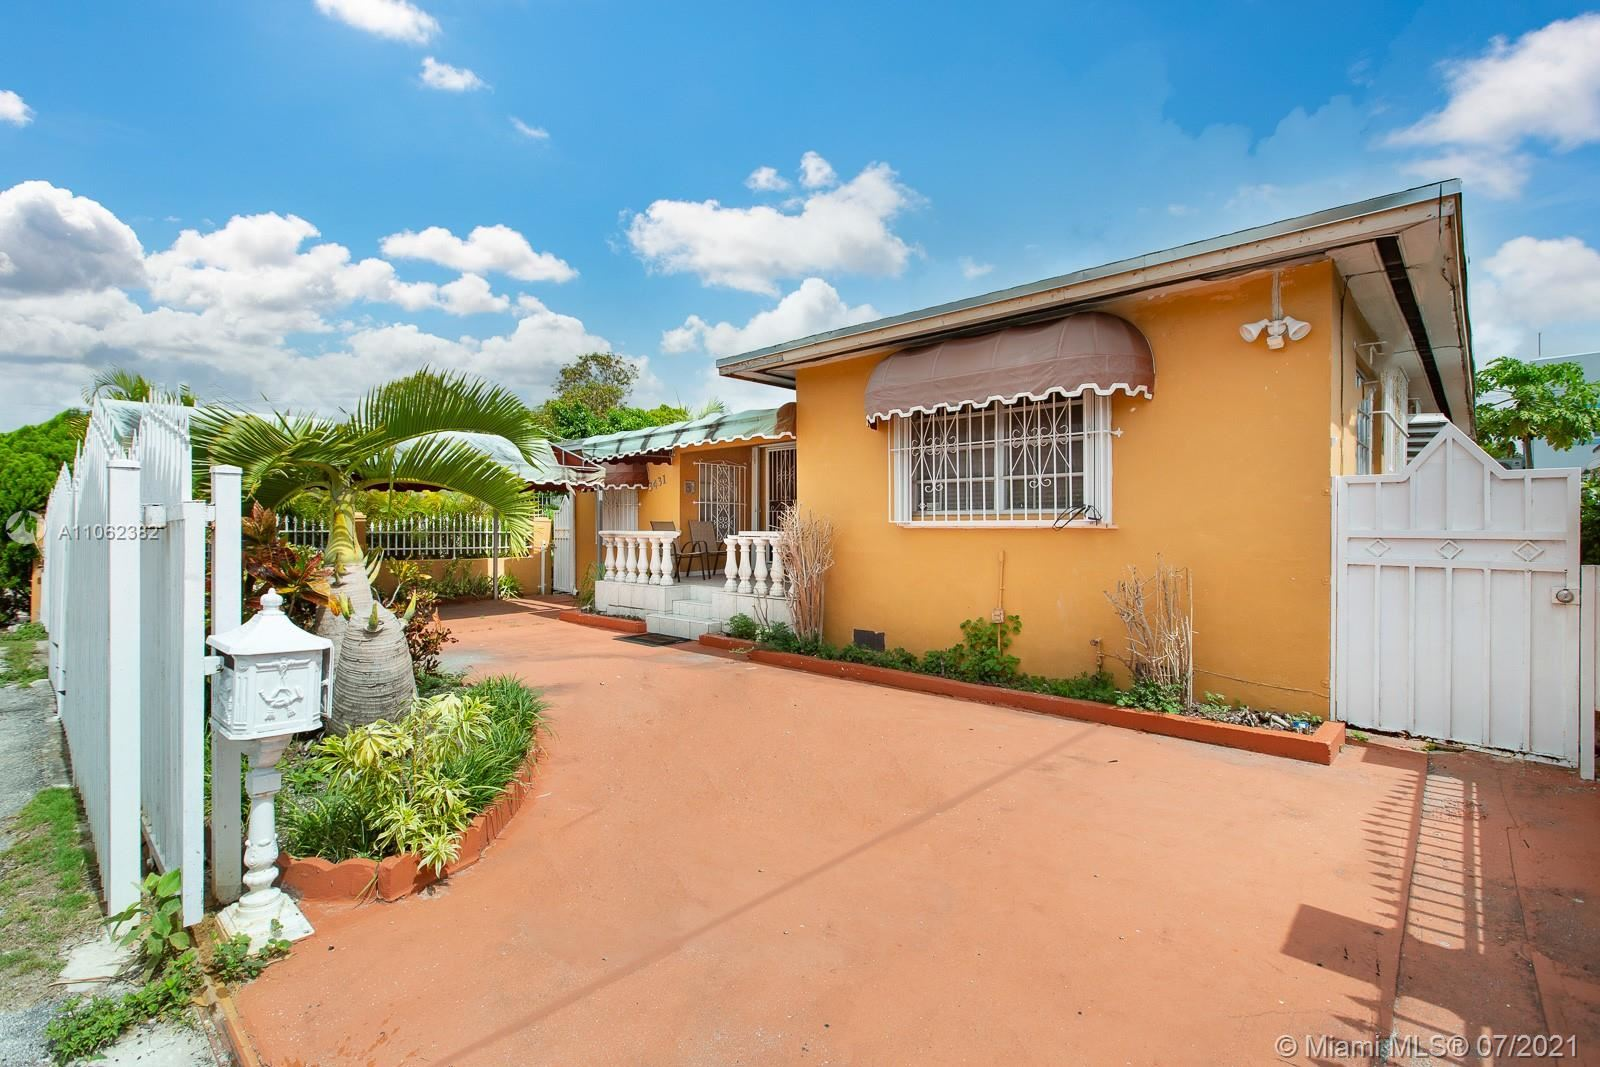 3431 NW 2nd Ter, Miami, FL 33125 - #: A11062382